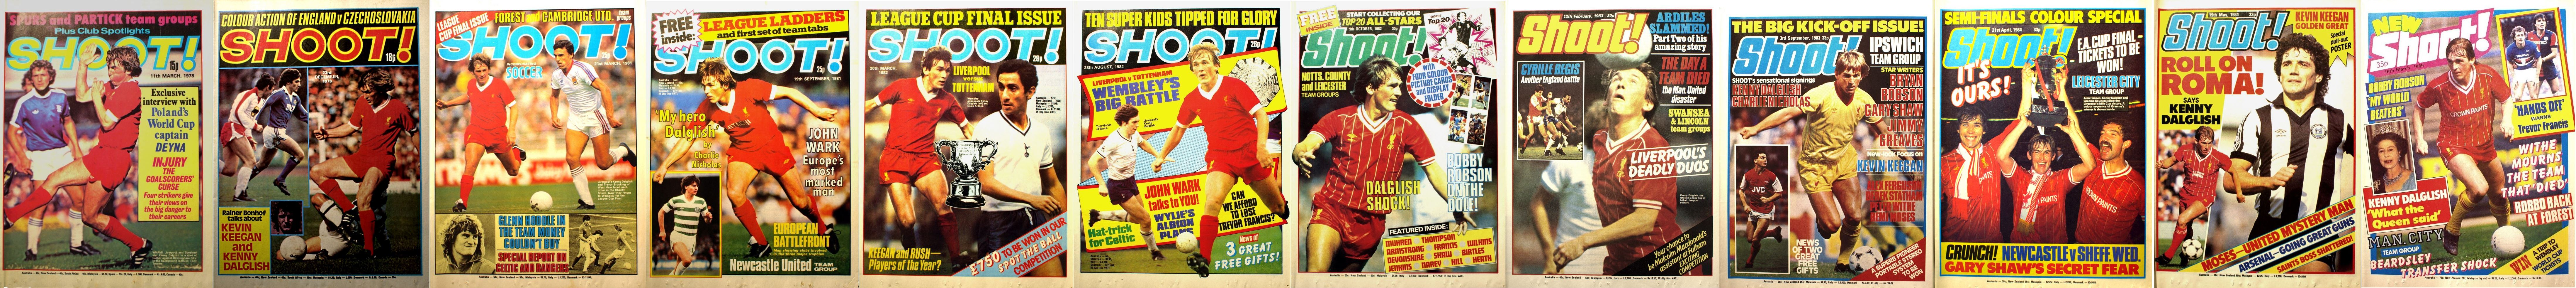 Kenny Dalglish on the cover of Shoot! 1978-1985